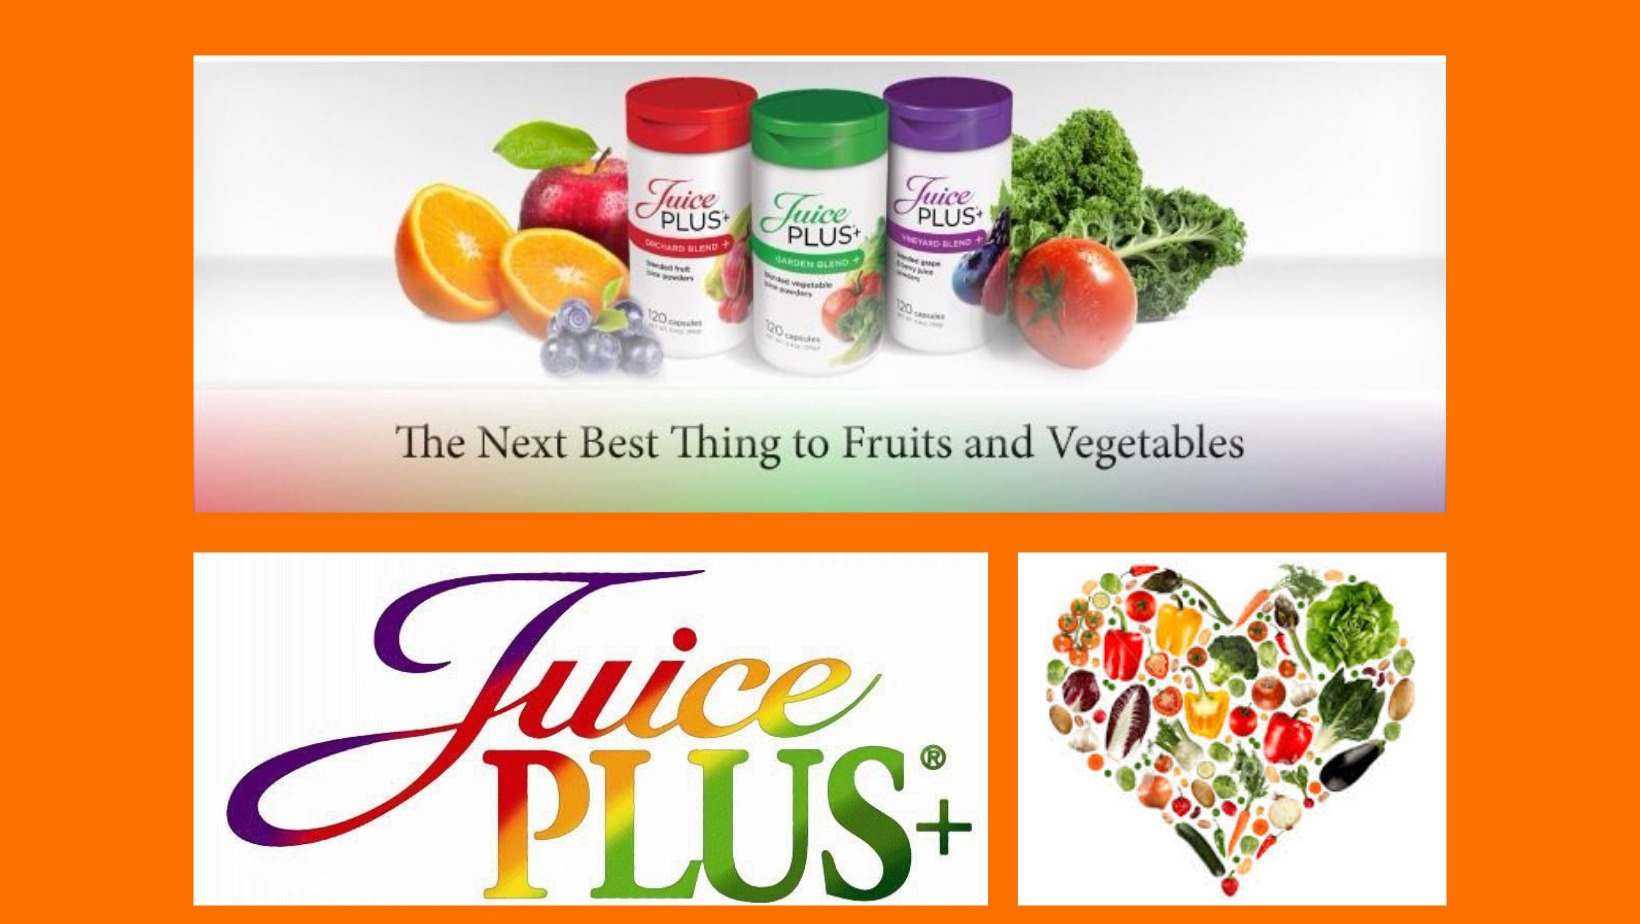 Wholesome Wellness + on Echelon Local | Juice Plus+ Distributor | (800) 476-0830 | Fruit and Vegetable Nutrition For A Healthy Lifestyle.